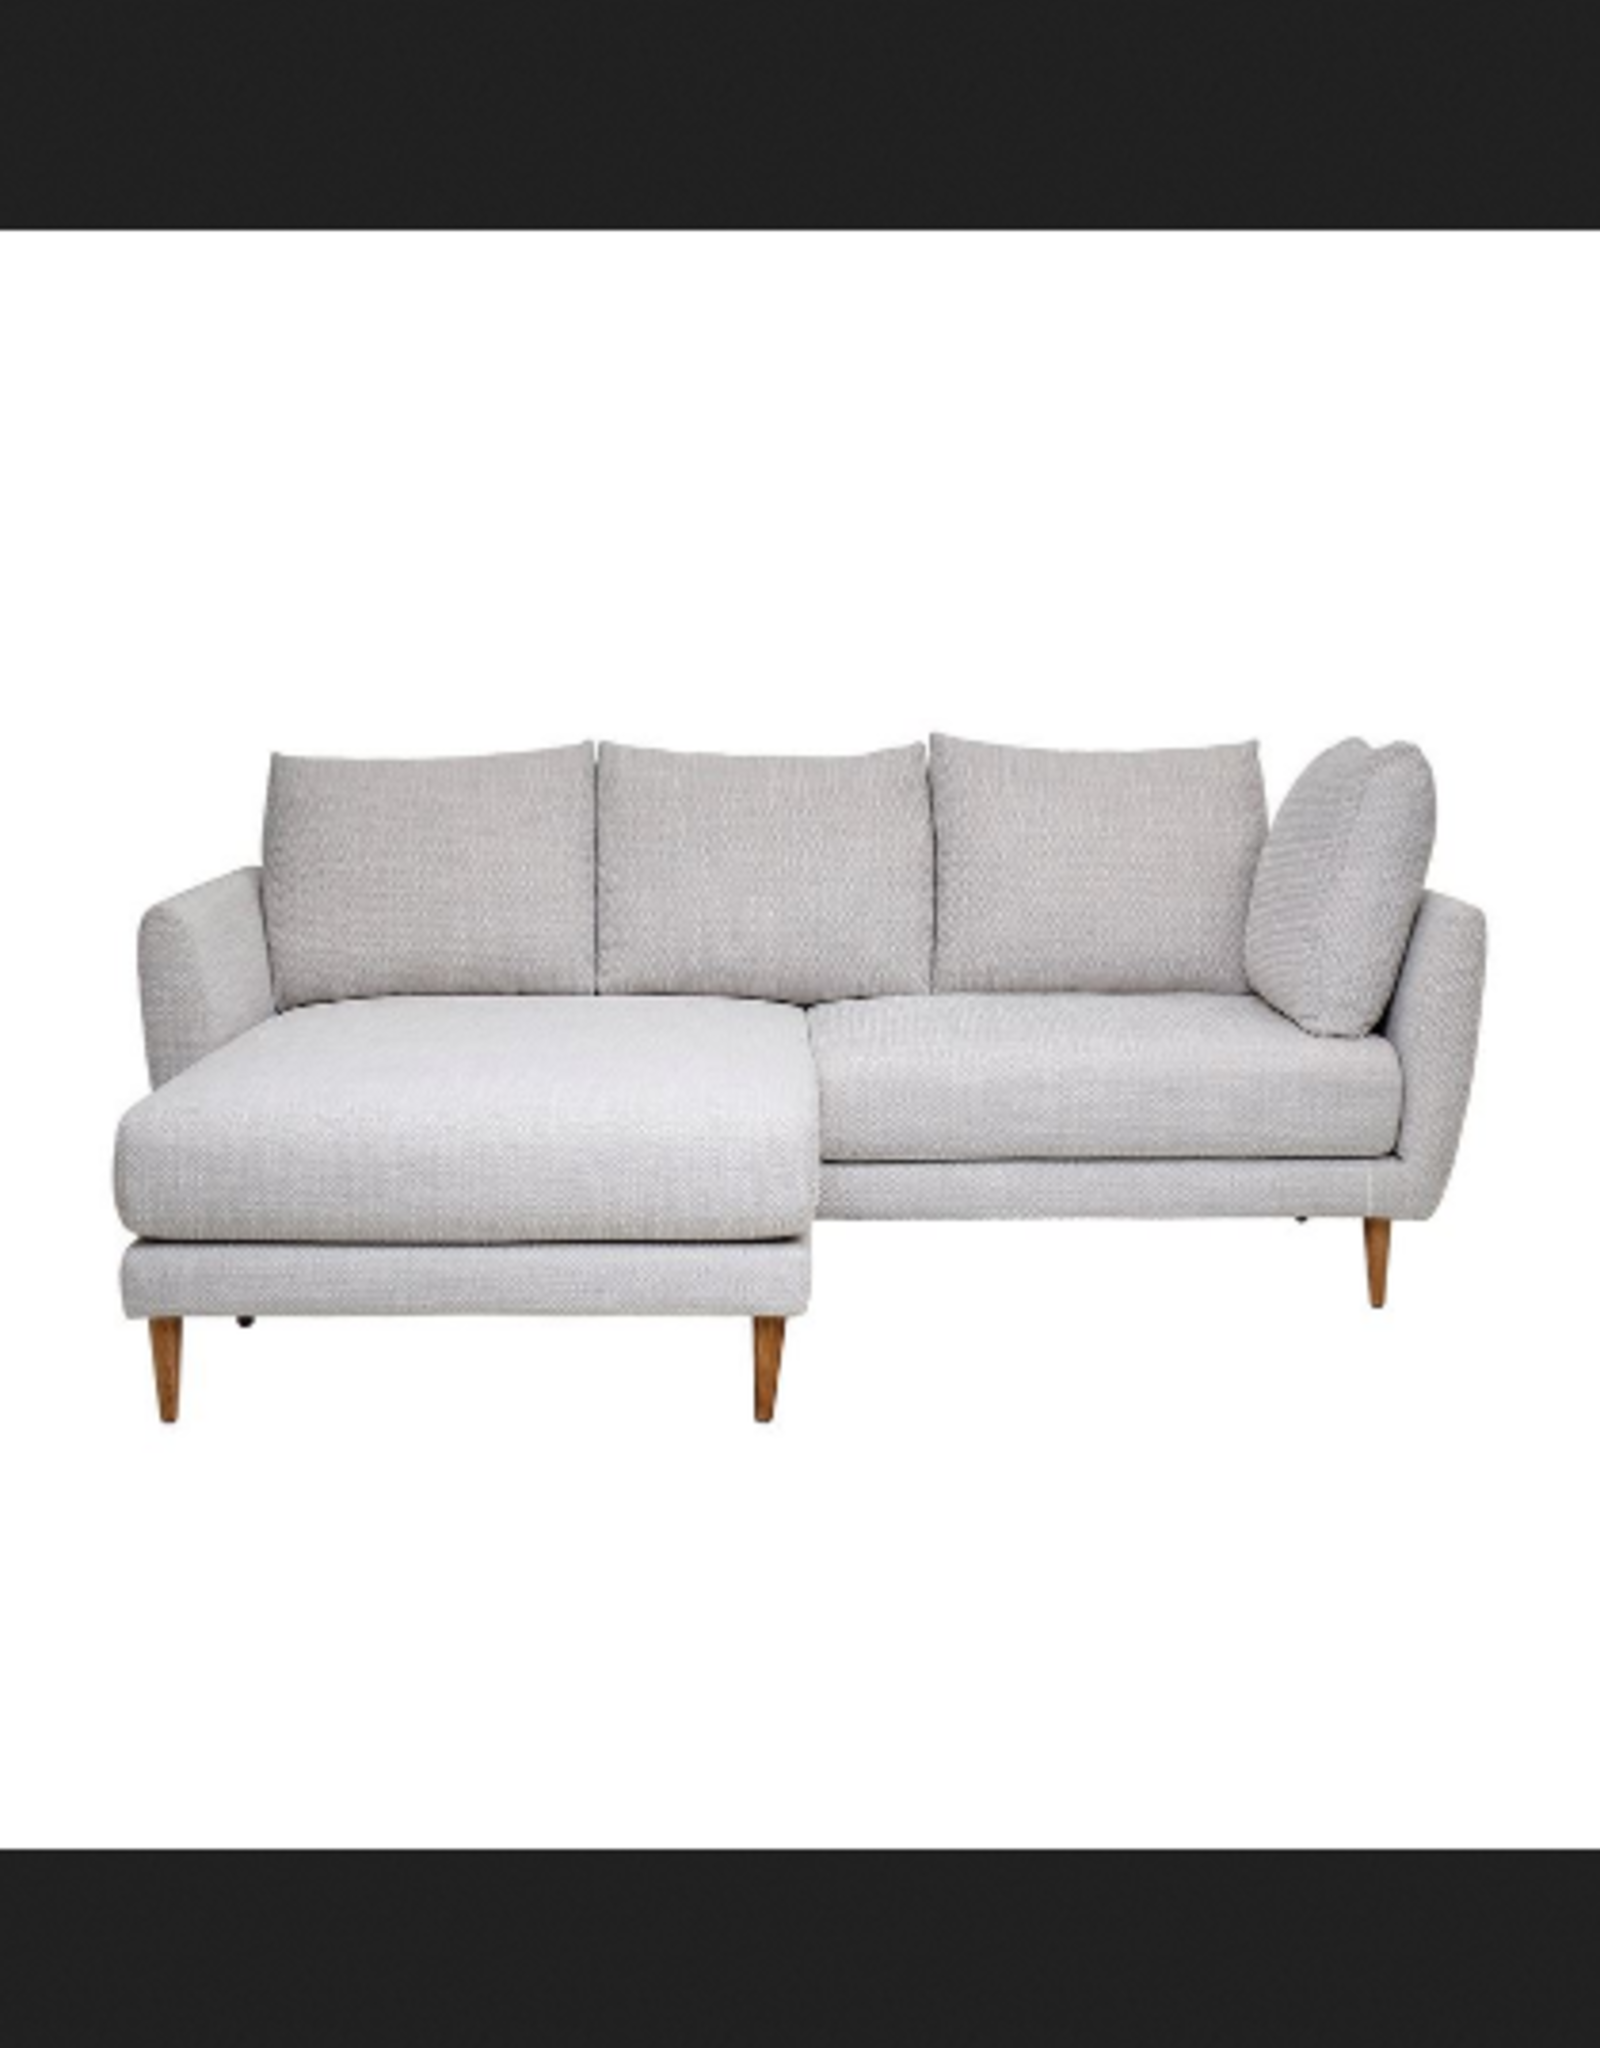 Beige Sofa with Chaise Lounge and Wood Legs